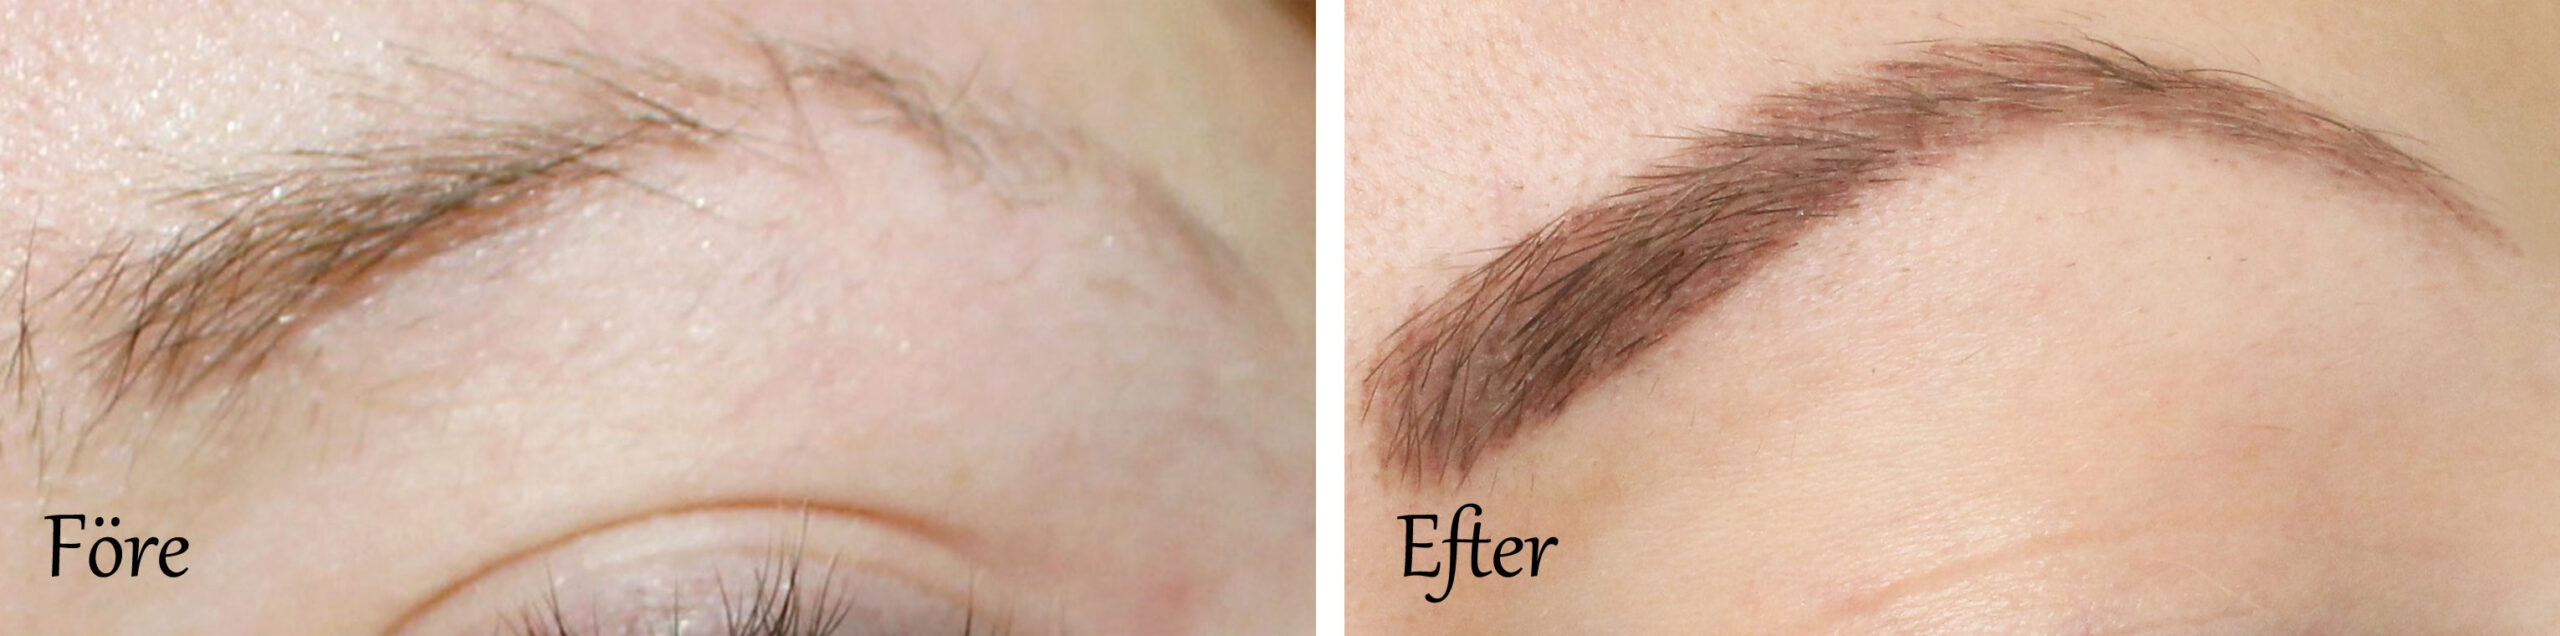 permanent-makuep-eyebrows-before-and-after